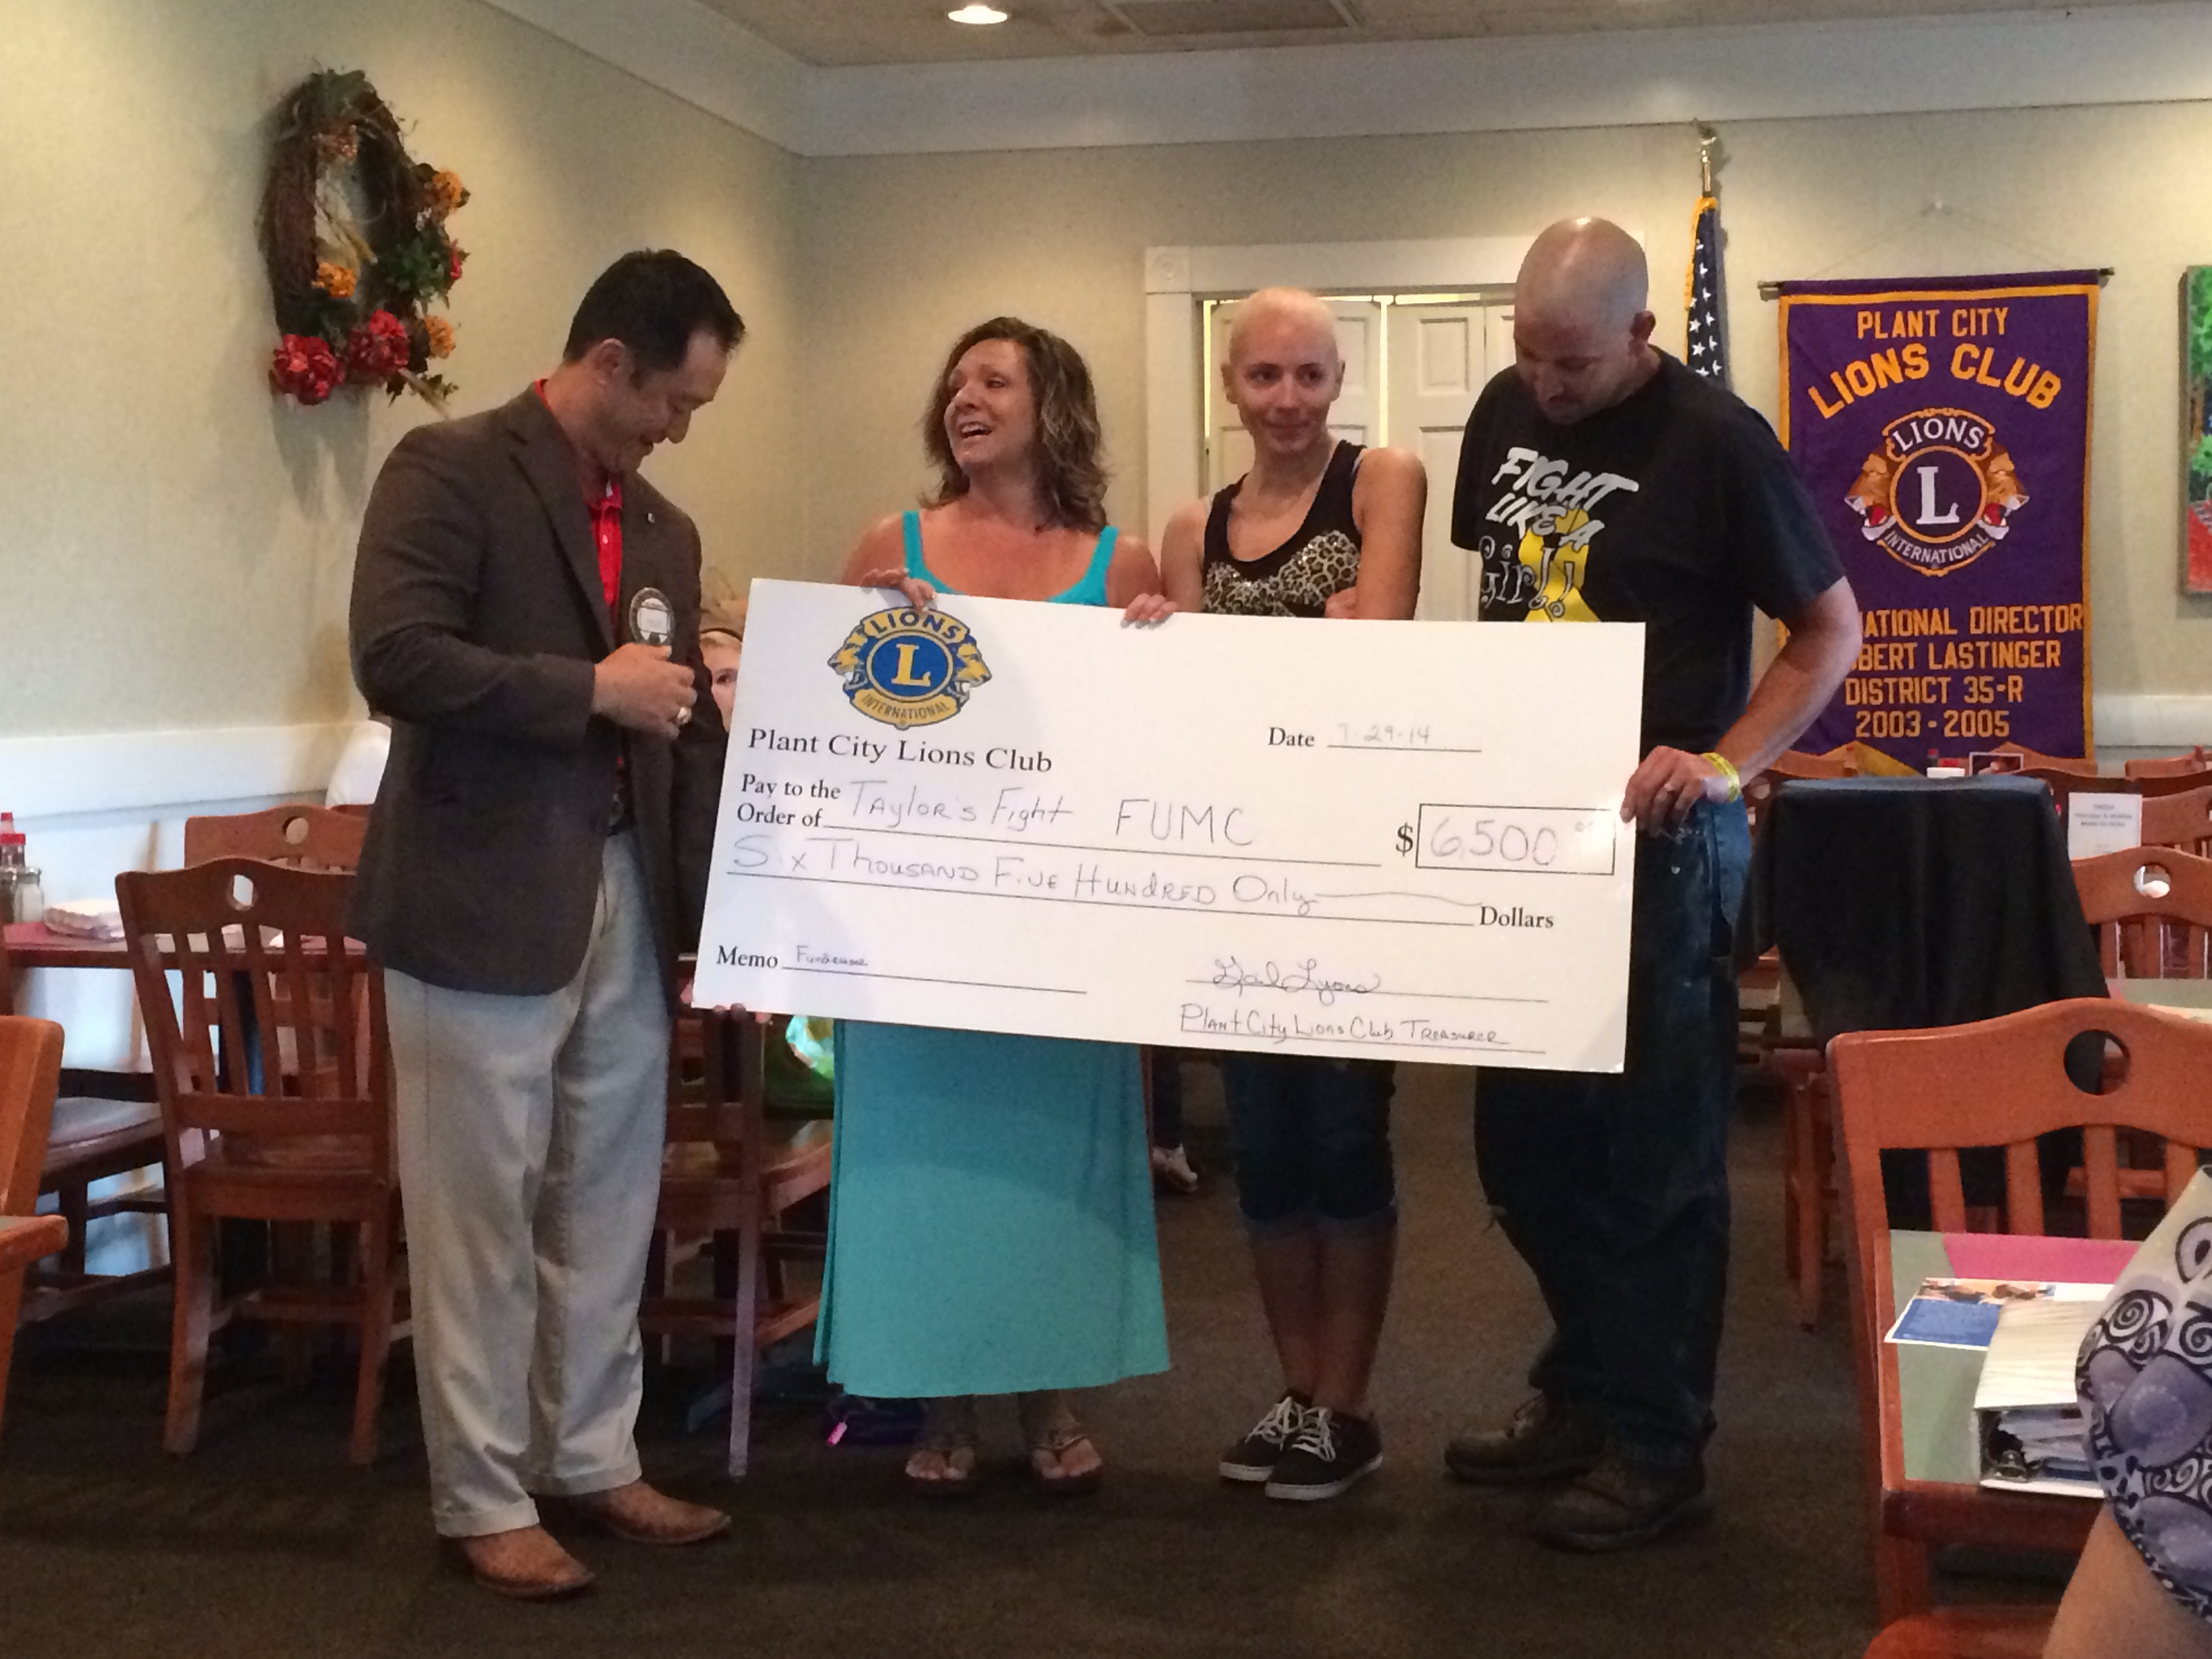 Plant City Lions Club Presents Taylor & Her Parents w/ A Check Of Funds Raised At The Taylor Fundraiser